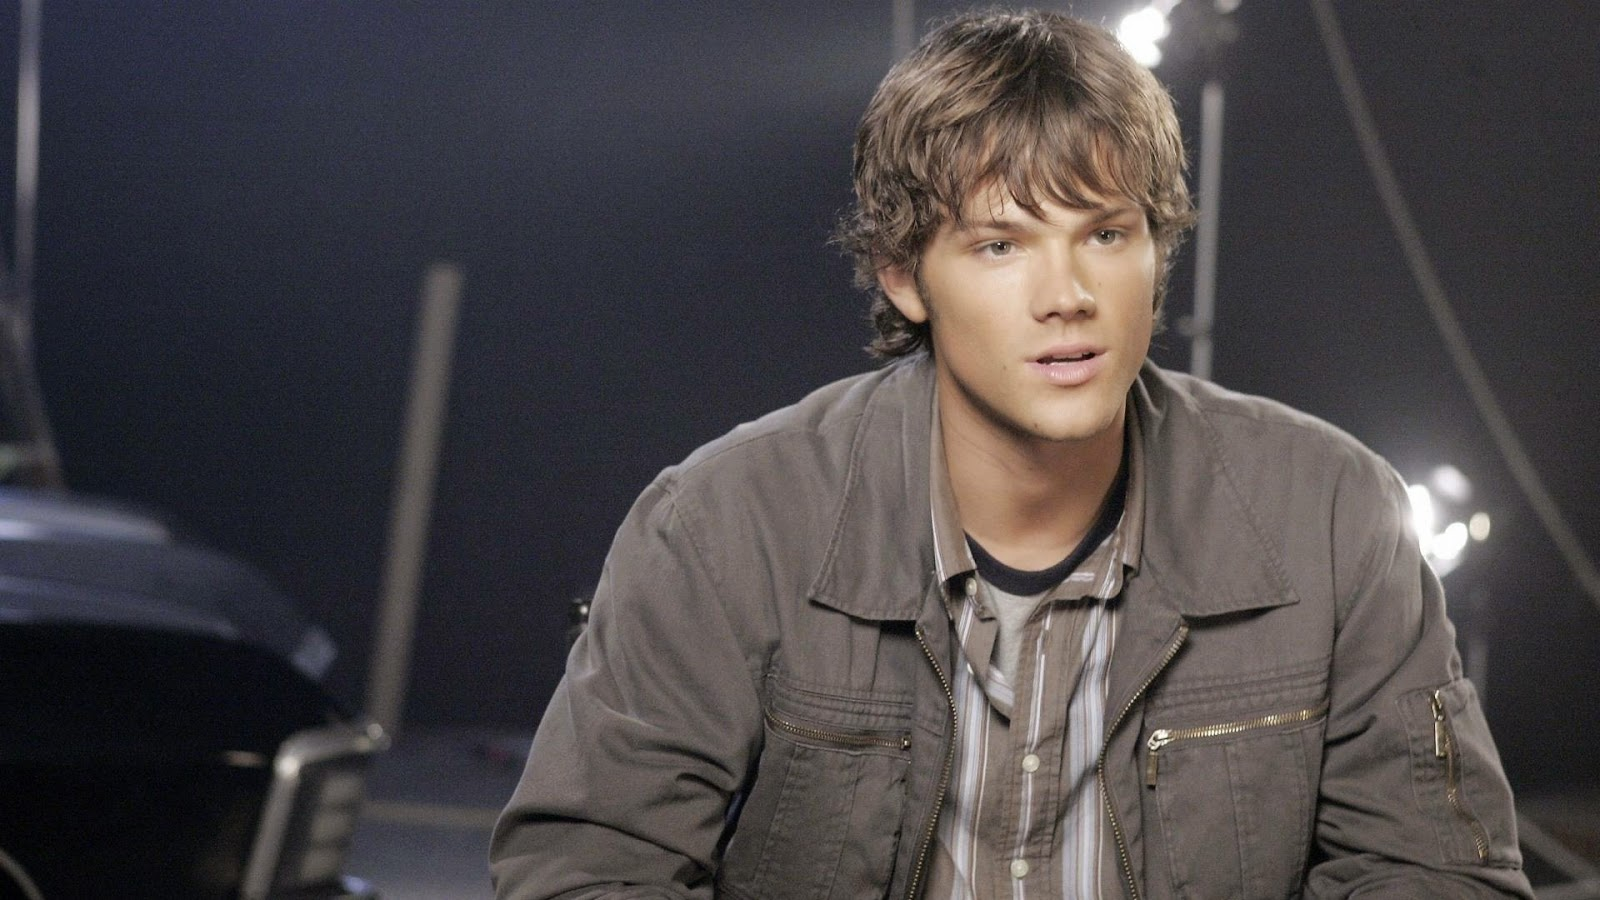 Jared padalecki quotes - Jared Padalecki Quotes 34